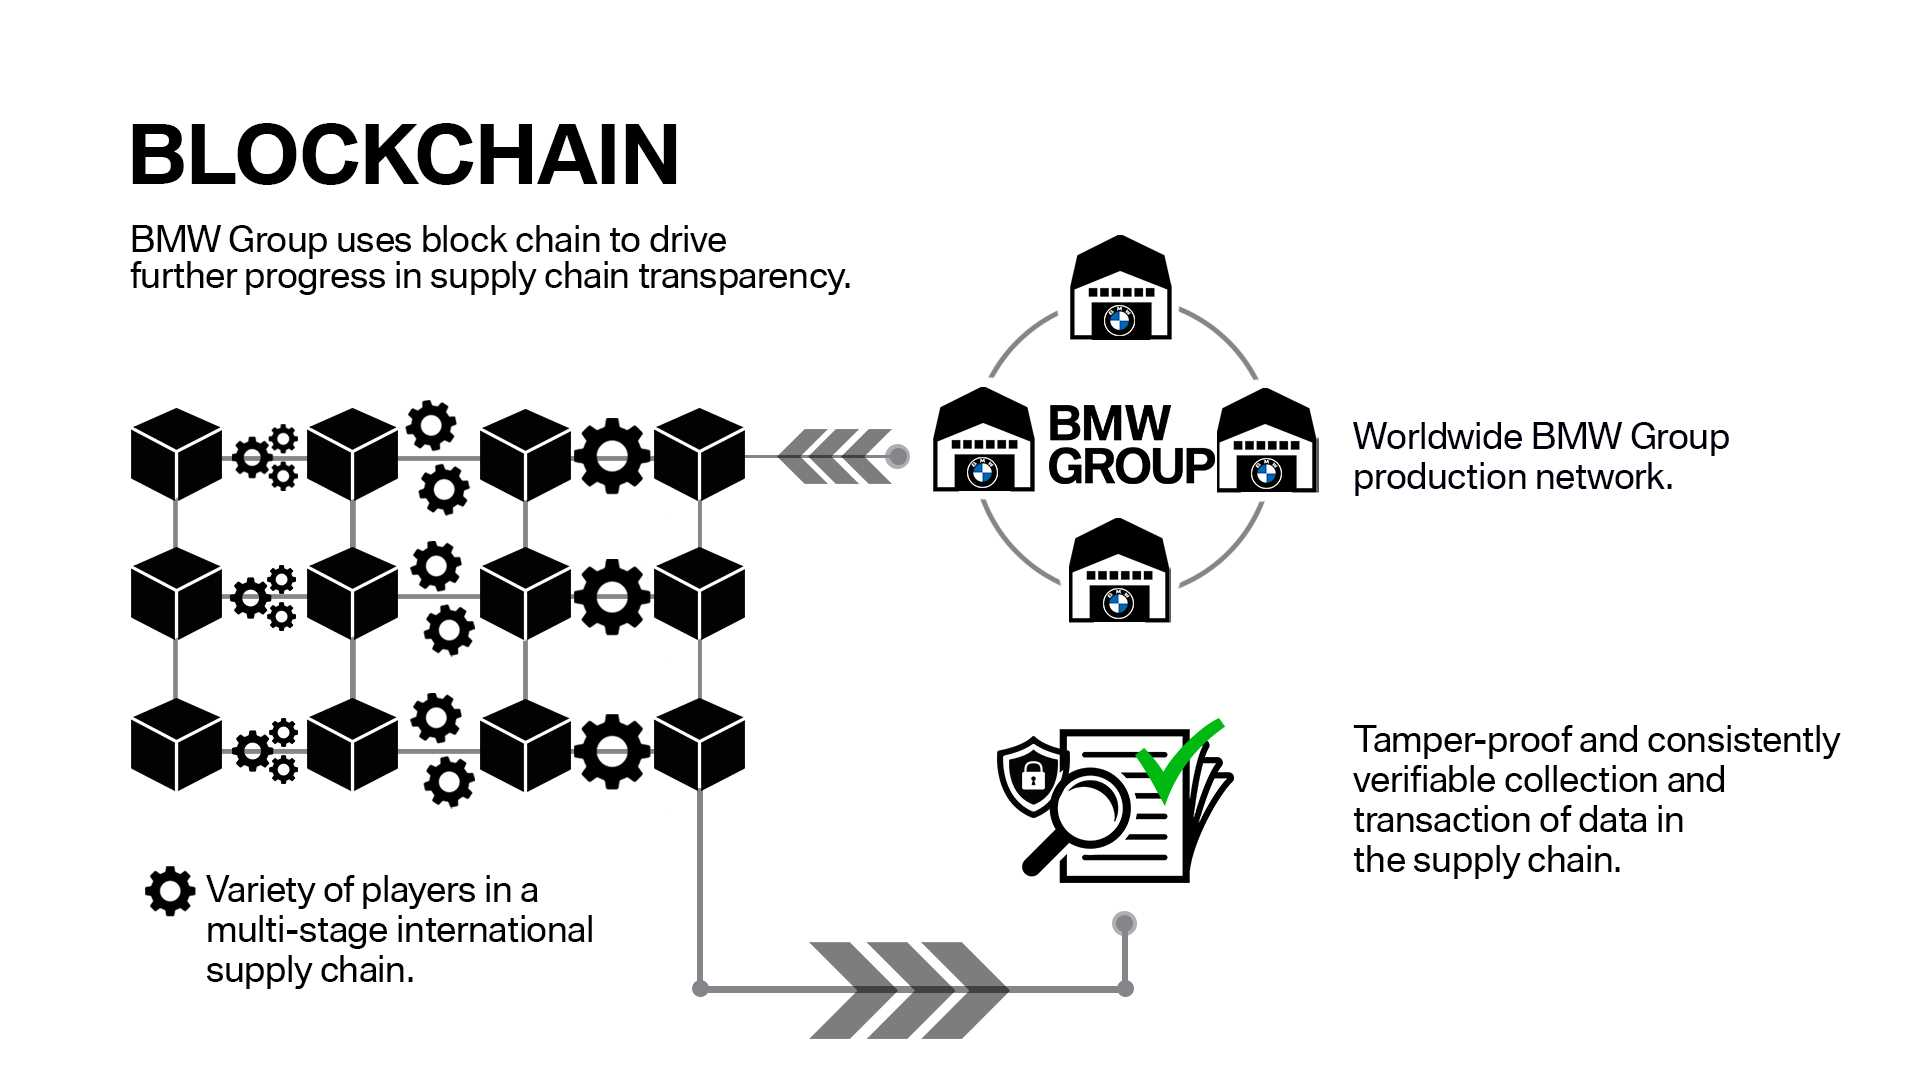 Advantages of Blockchain in Supply Chain